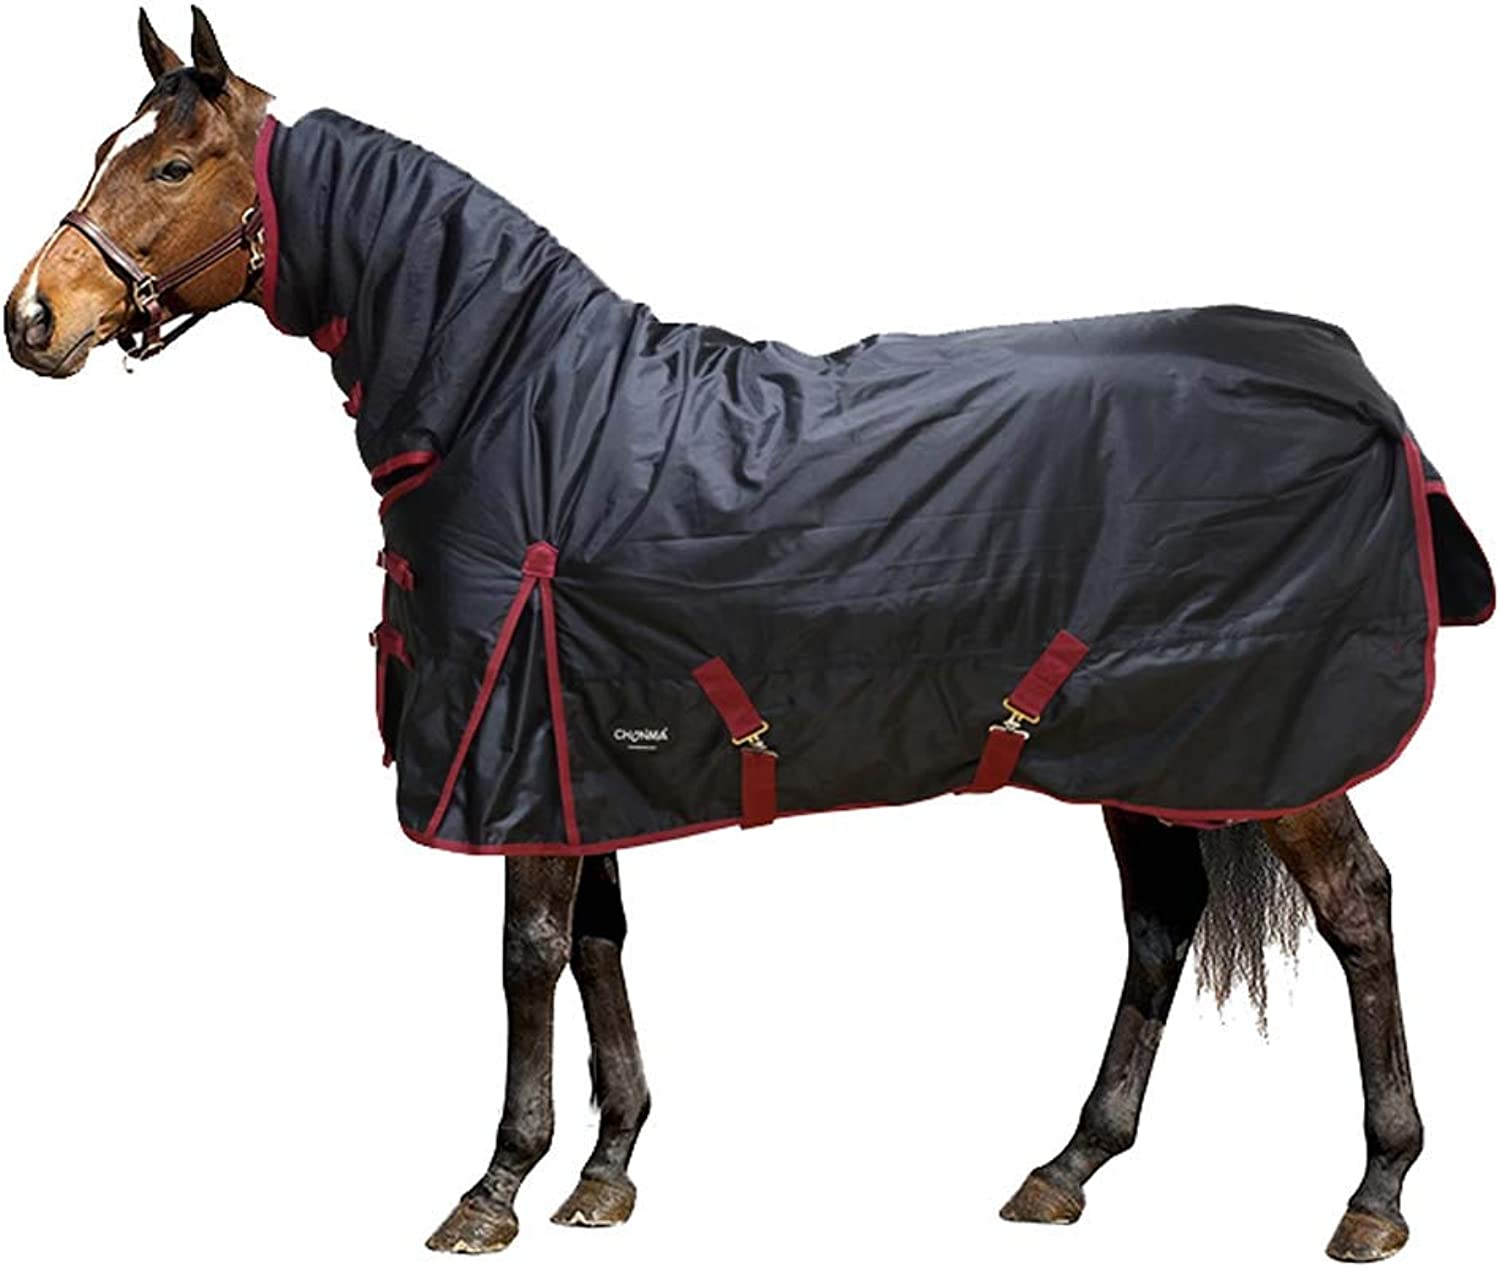 280G Thick Cotton Horse blanket Turnout Rug Combo Winter Full Neck Fill Waterproof Fixed Combo Unisex for Equestrian Pony Horse Riding,7XL